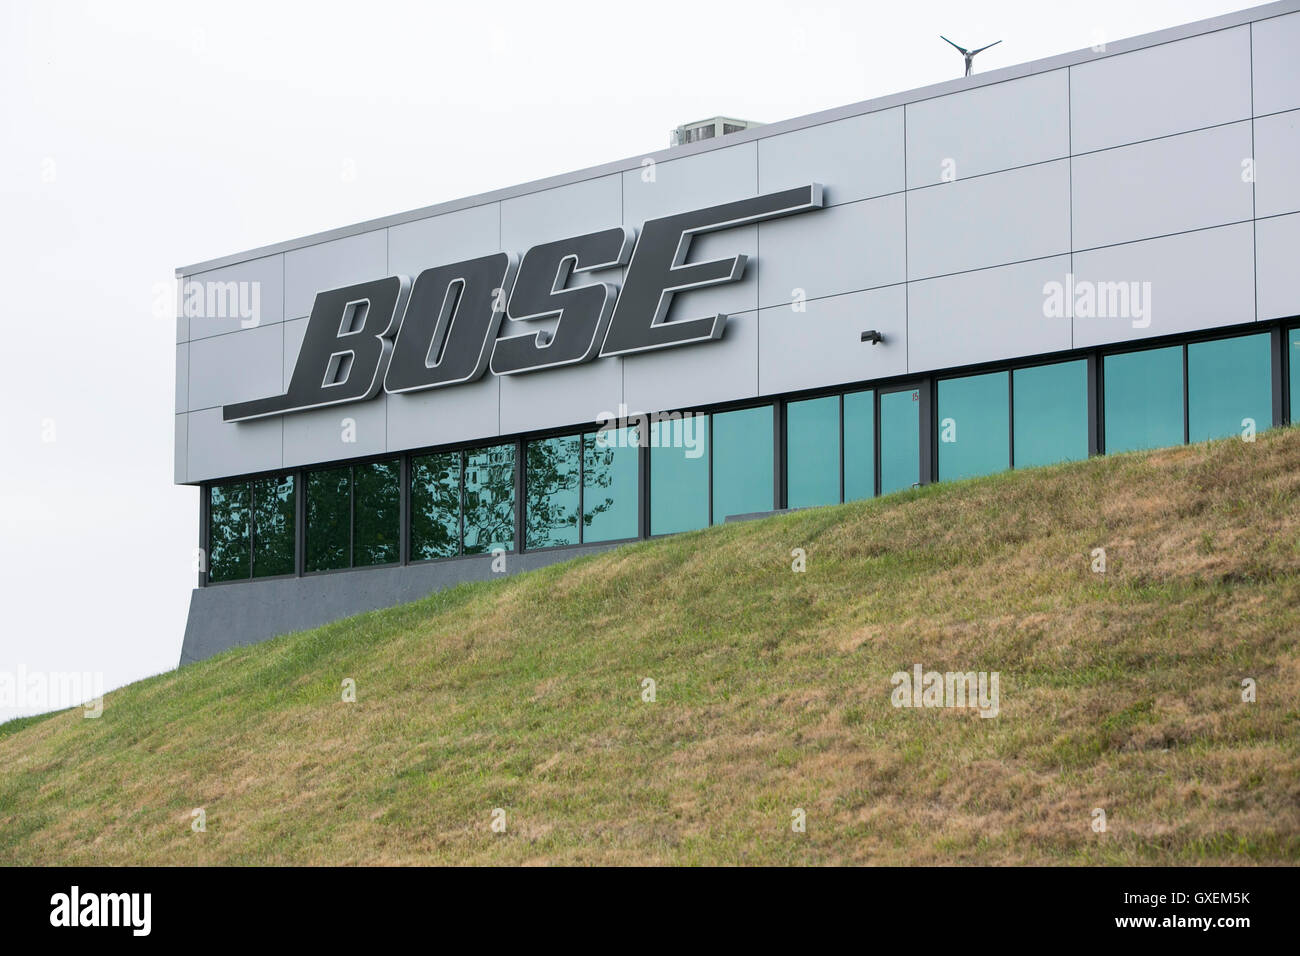 bose corporation. a logo sign outside of the headquarters bose corporation in framingham, massachusetts on august 13, 2016. v